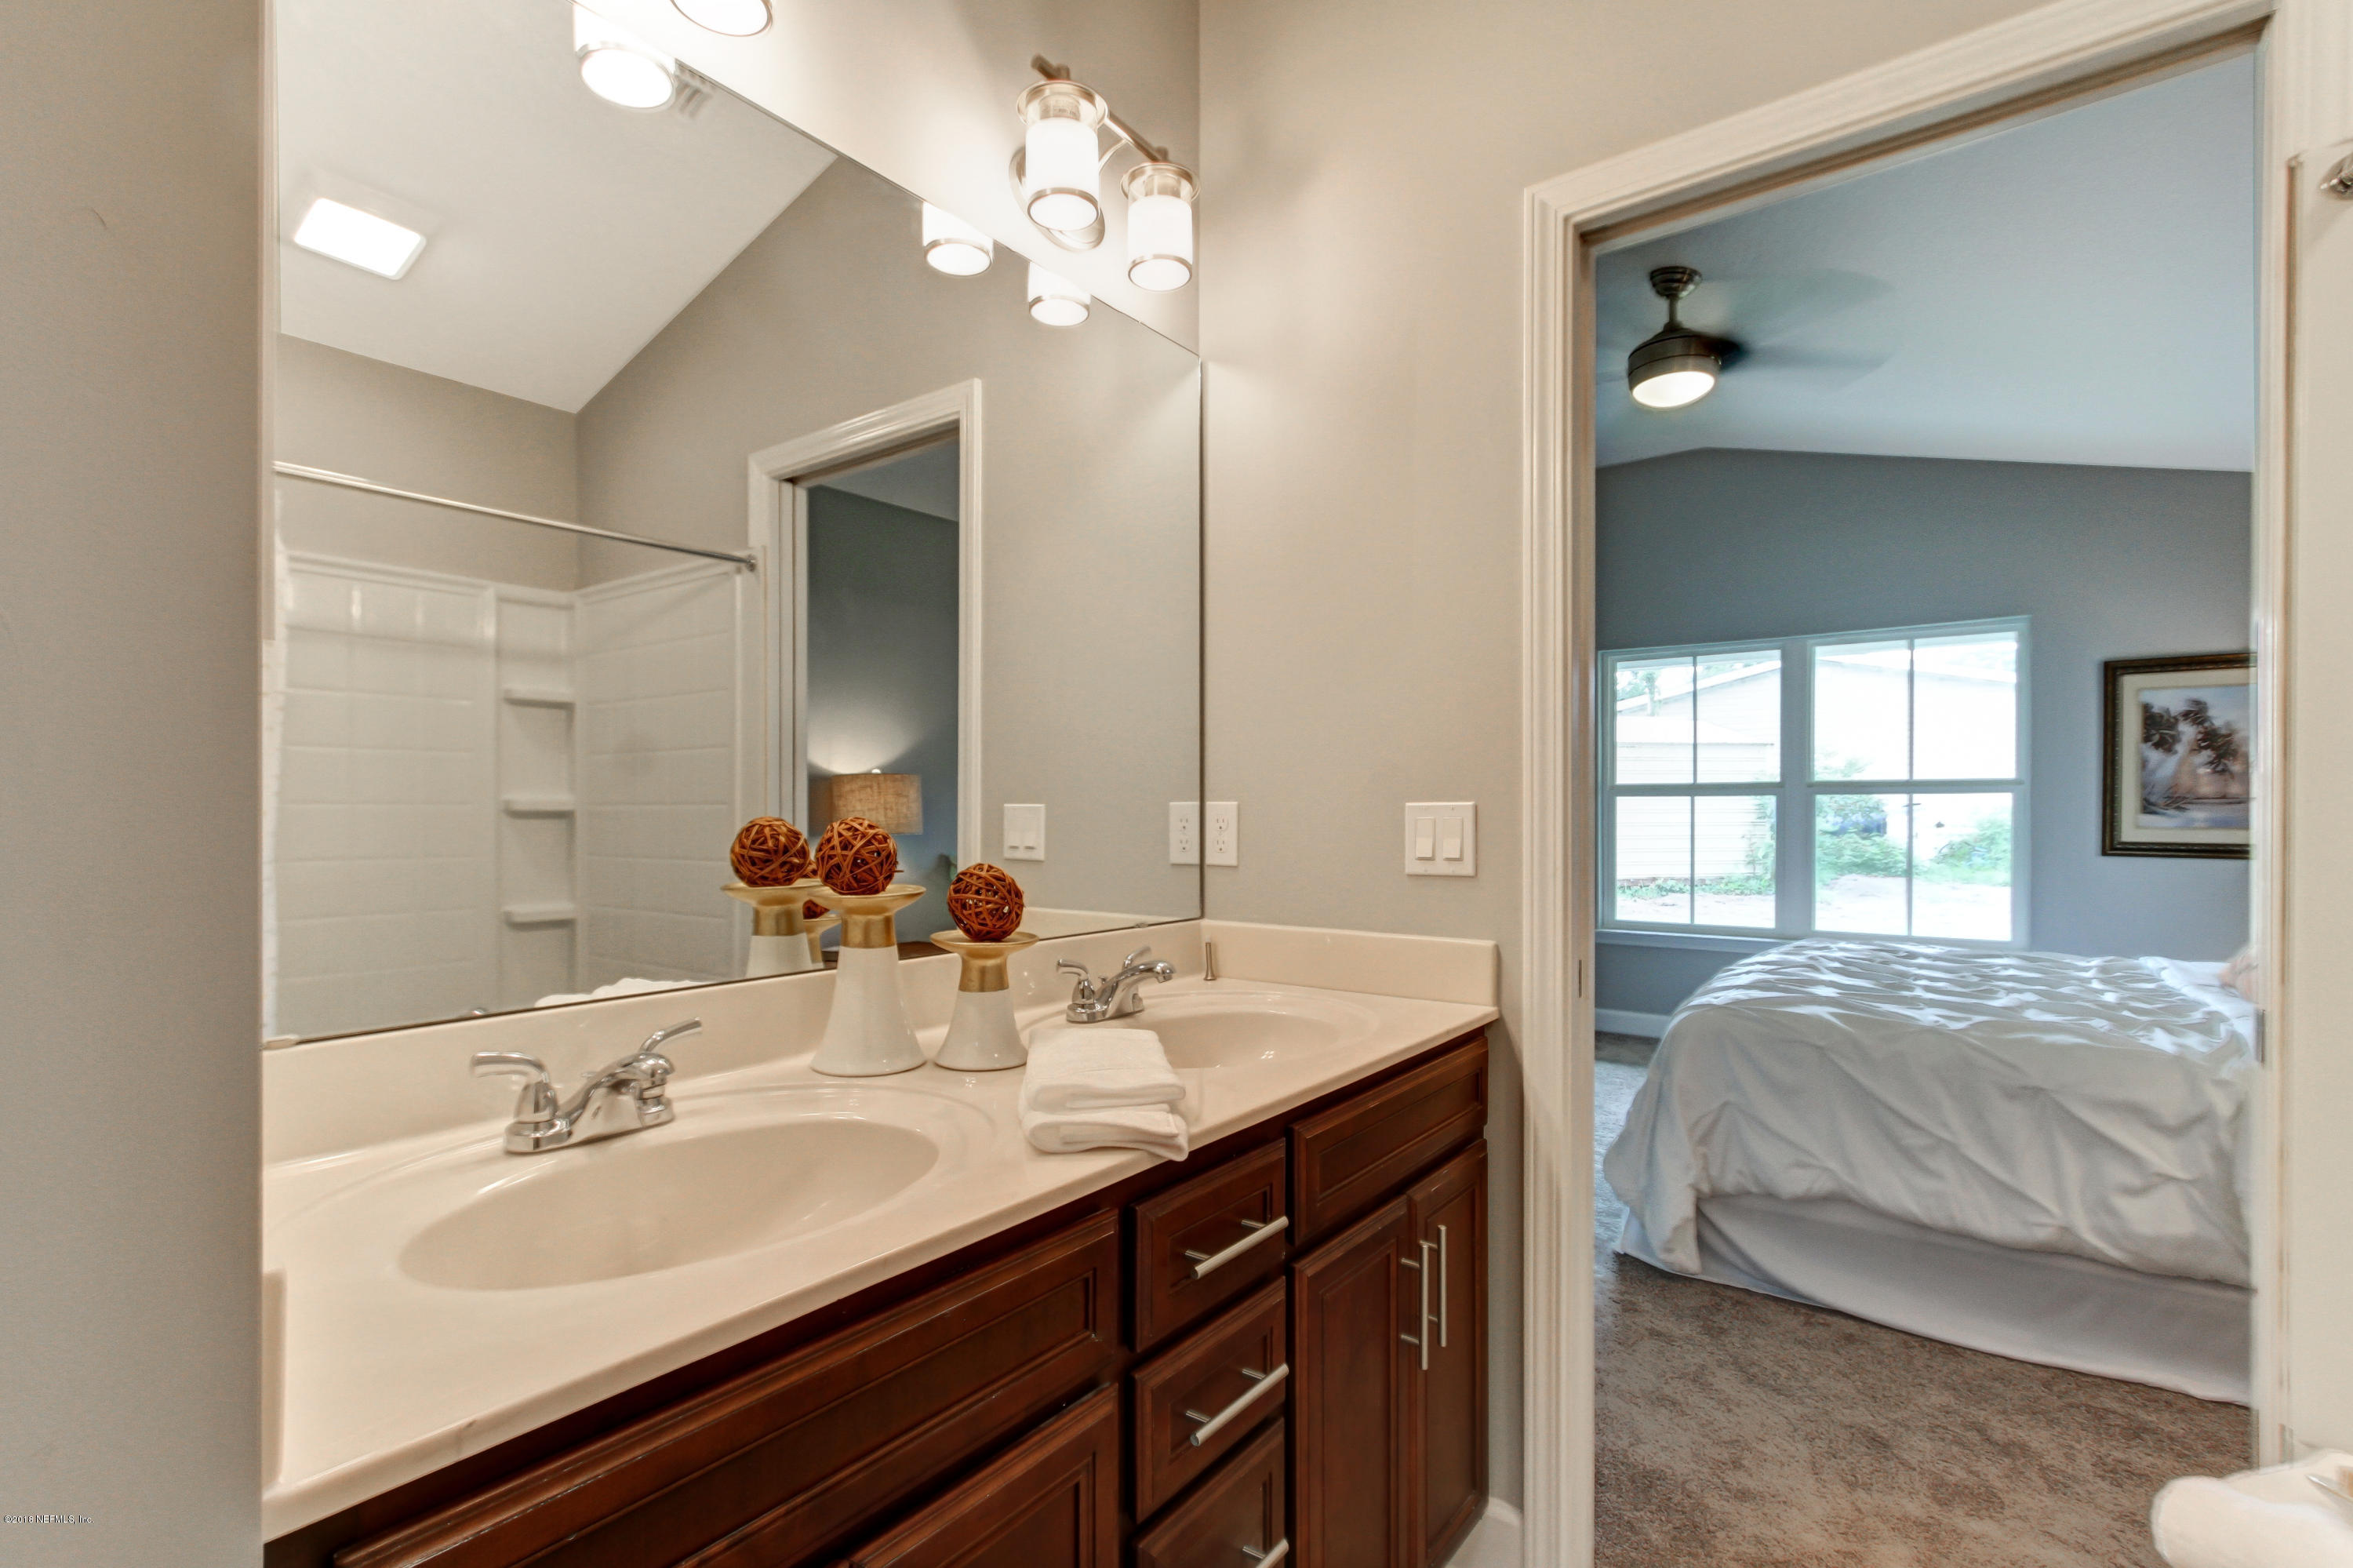 6187 SUNSET, ST AUGUSTINE, FLORIDA 32095, 3 Bedrooms Bedrooms, ,2 BathroomsBathrooms,Residential - single family,For sale,SUNSET,951078